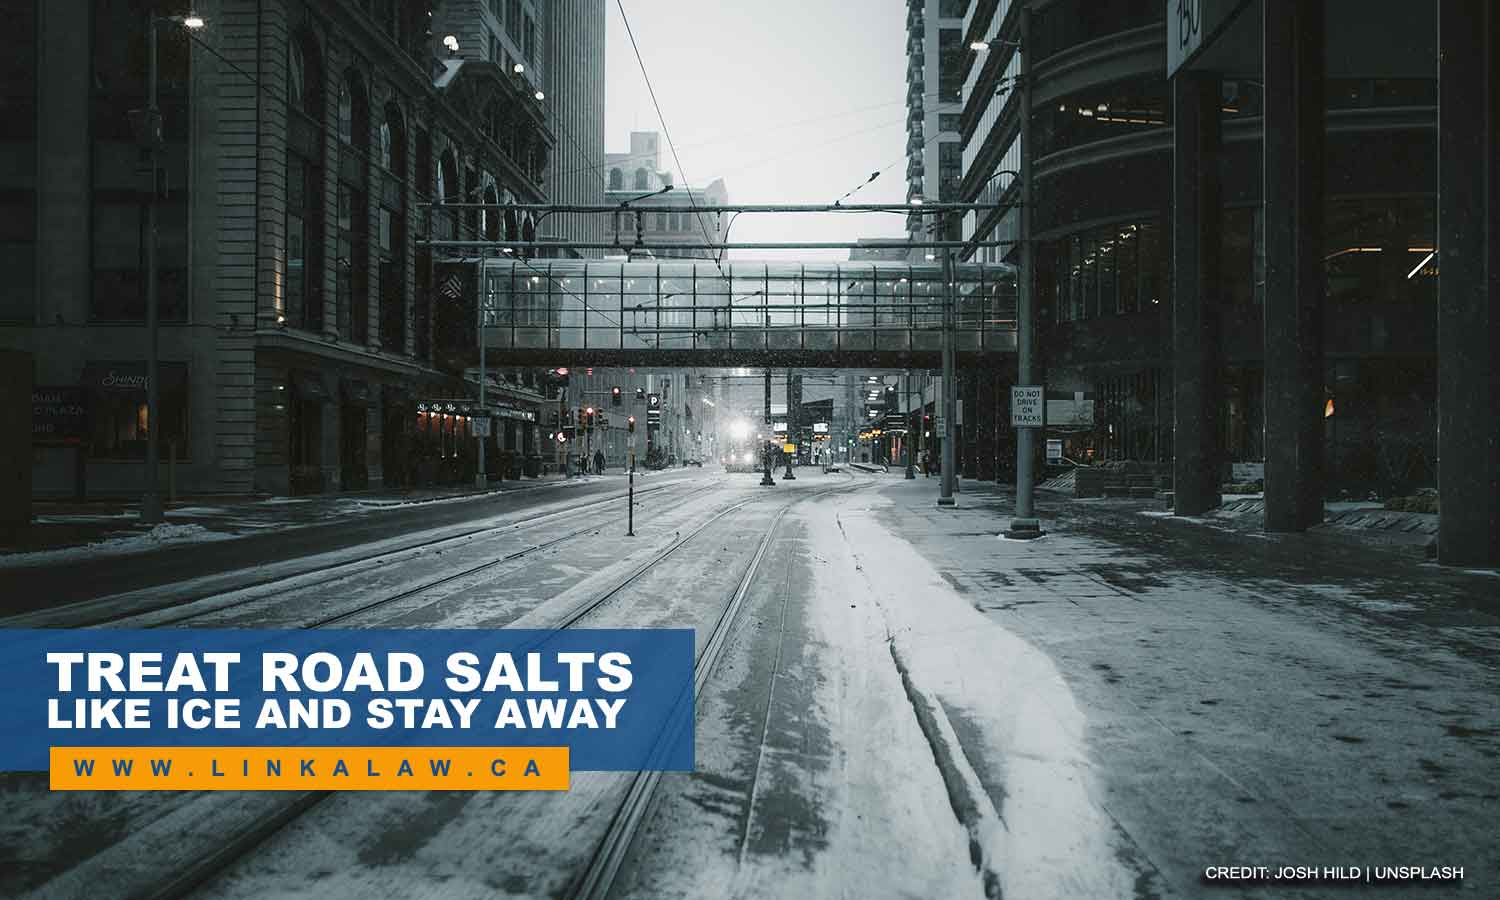 Treat road salts like ice and stay away